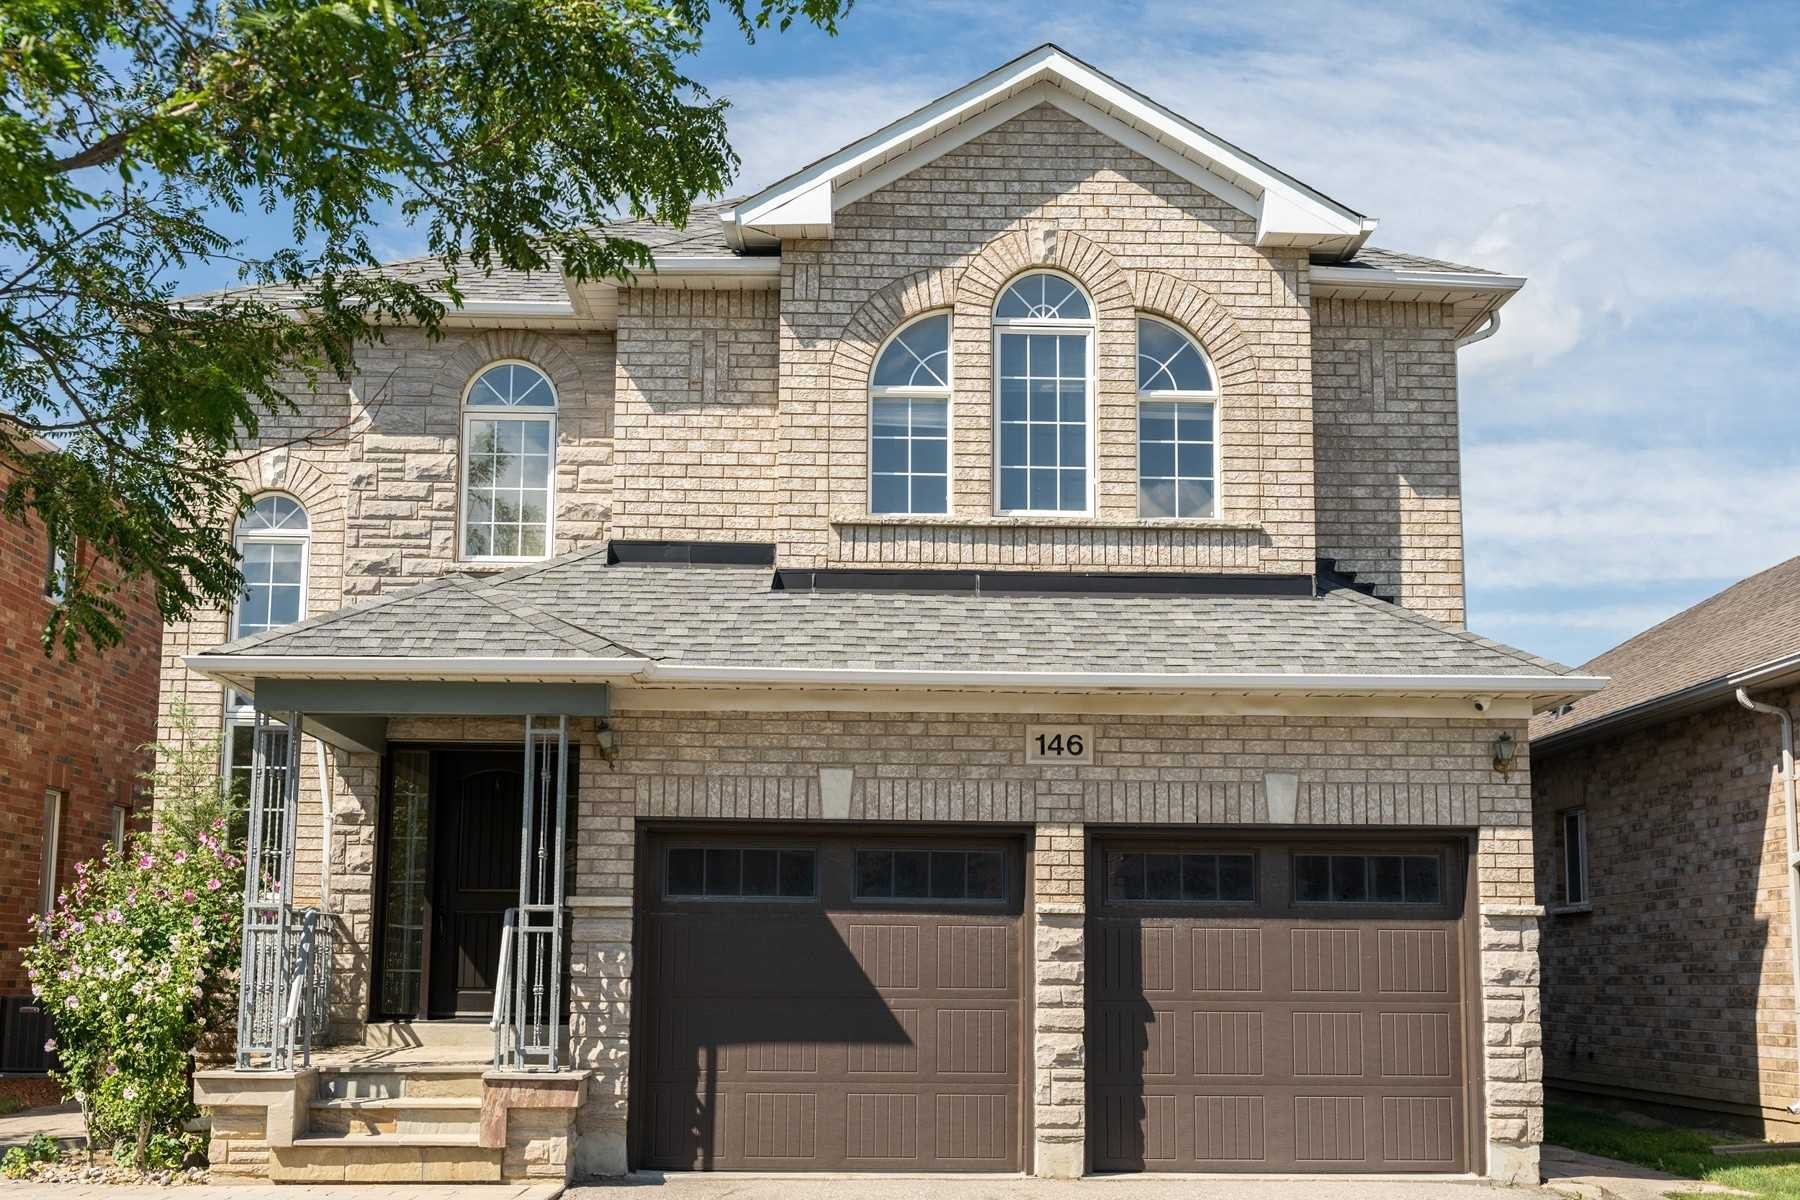 Main Photo: 146 Sonoma Boulevard in Vaughan: Sonoma Heights House (2-Storey) for sale : MLS®# N4884427